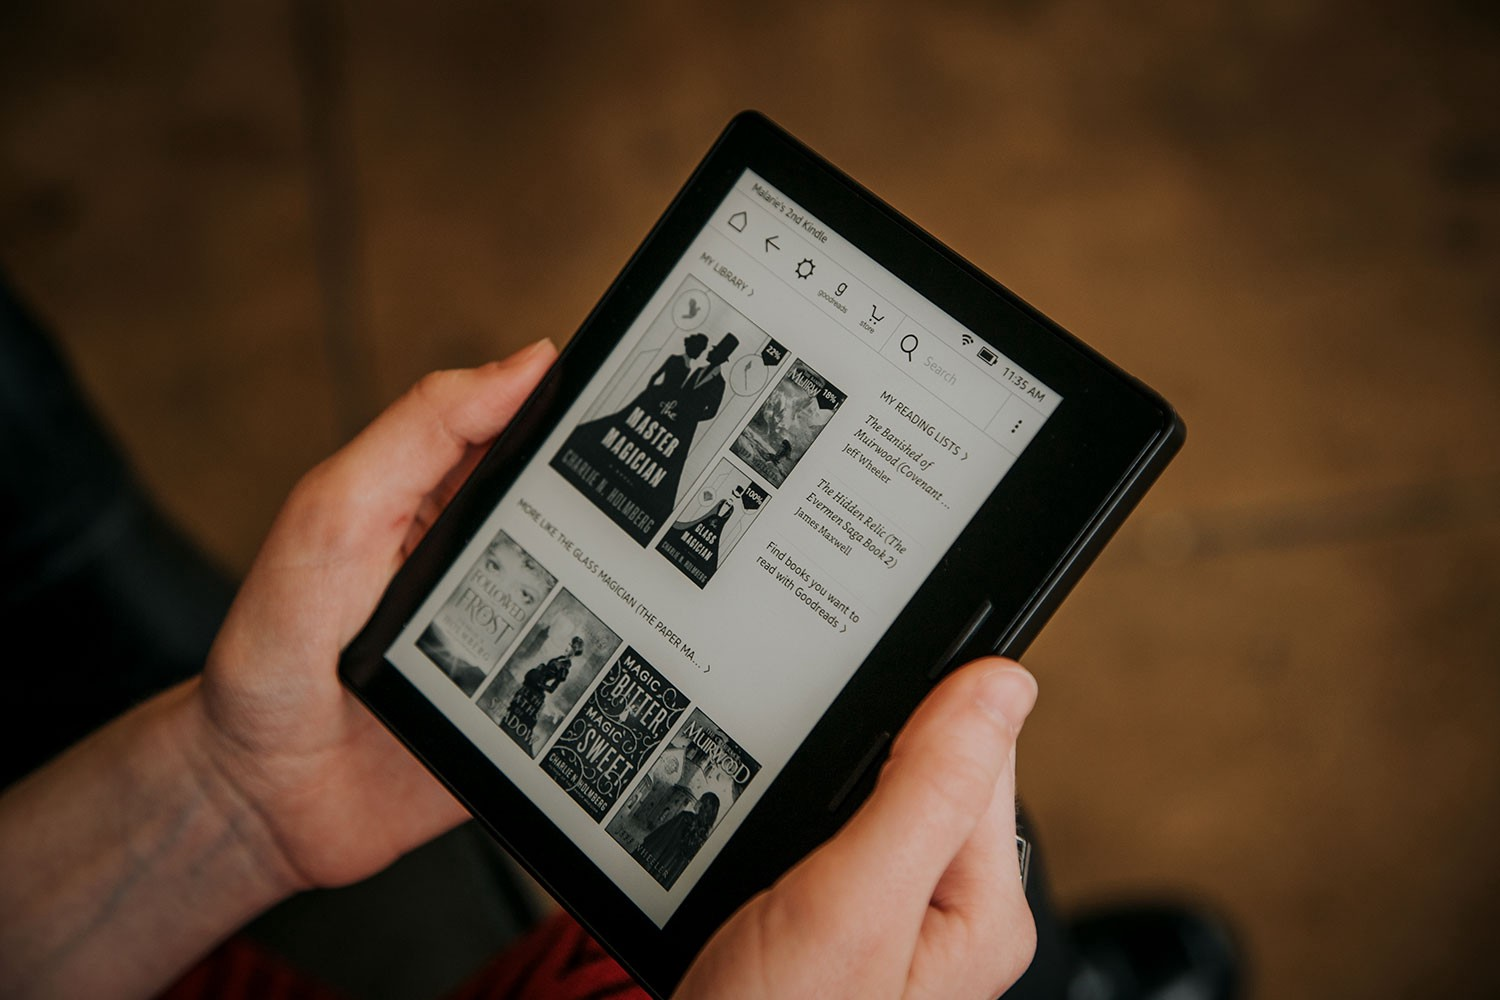 How to share data from your Kindle tablet through Amazon Kindle account?